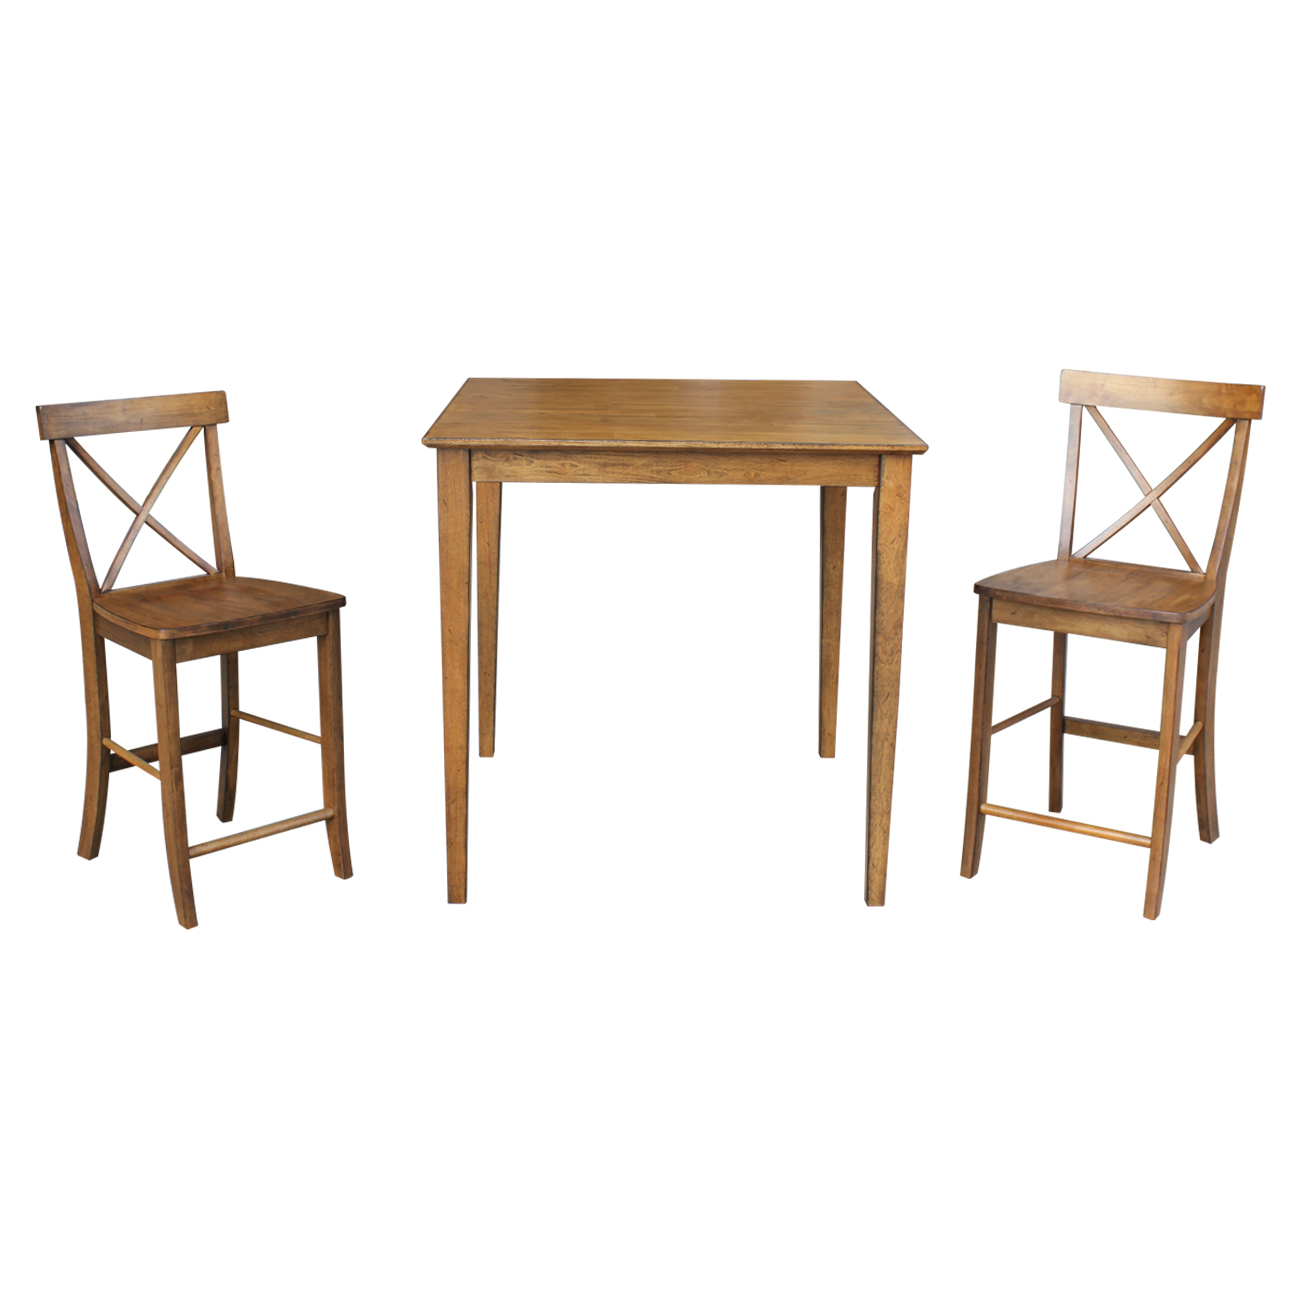 "36"" x 36"" Counter Height Table with 2 X-back Stools in Pecan - Set of 3"